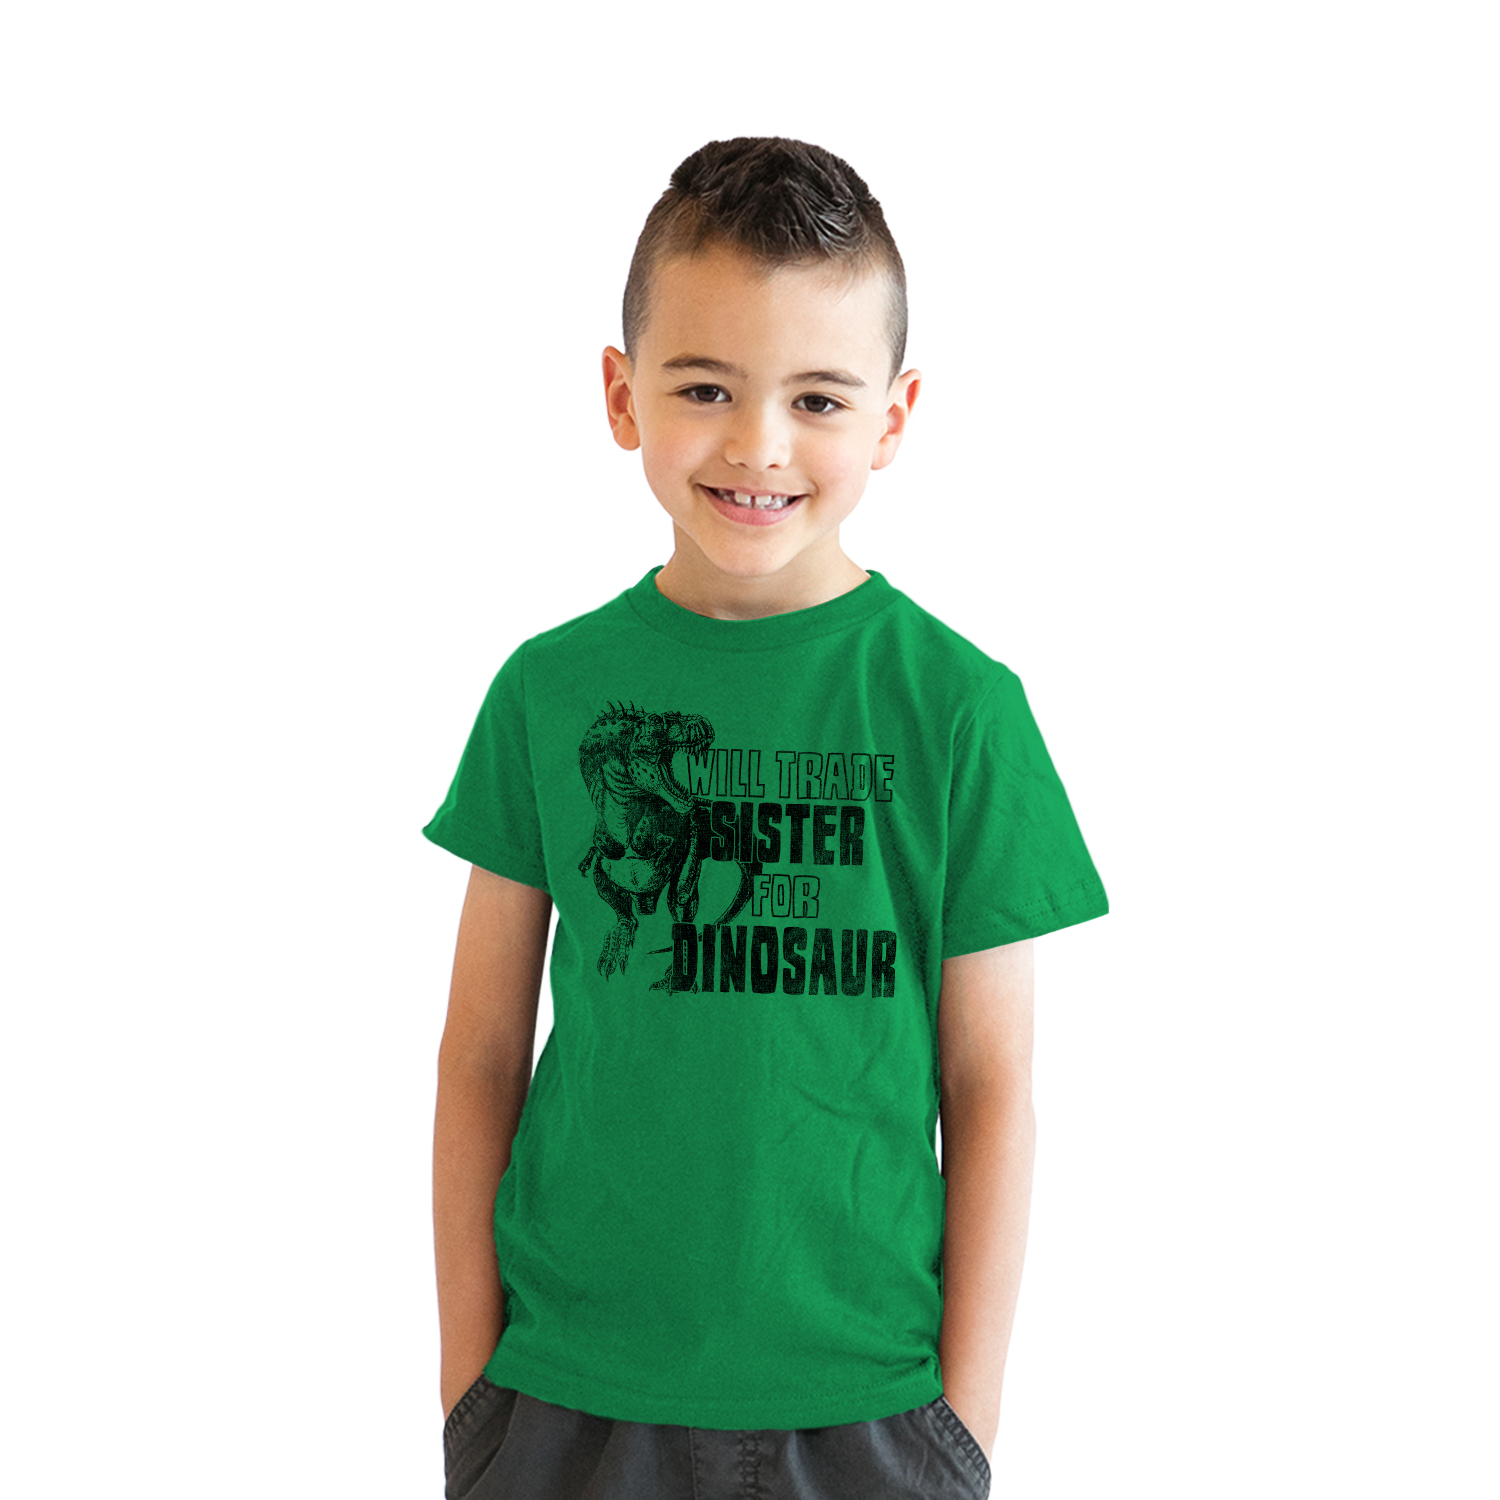 Youth Will Trade Sister For Dinosaur Funny Cool Dino T-Rex T shirt for Kids